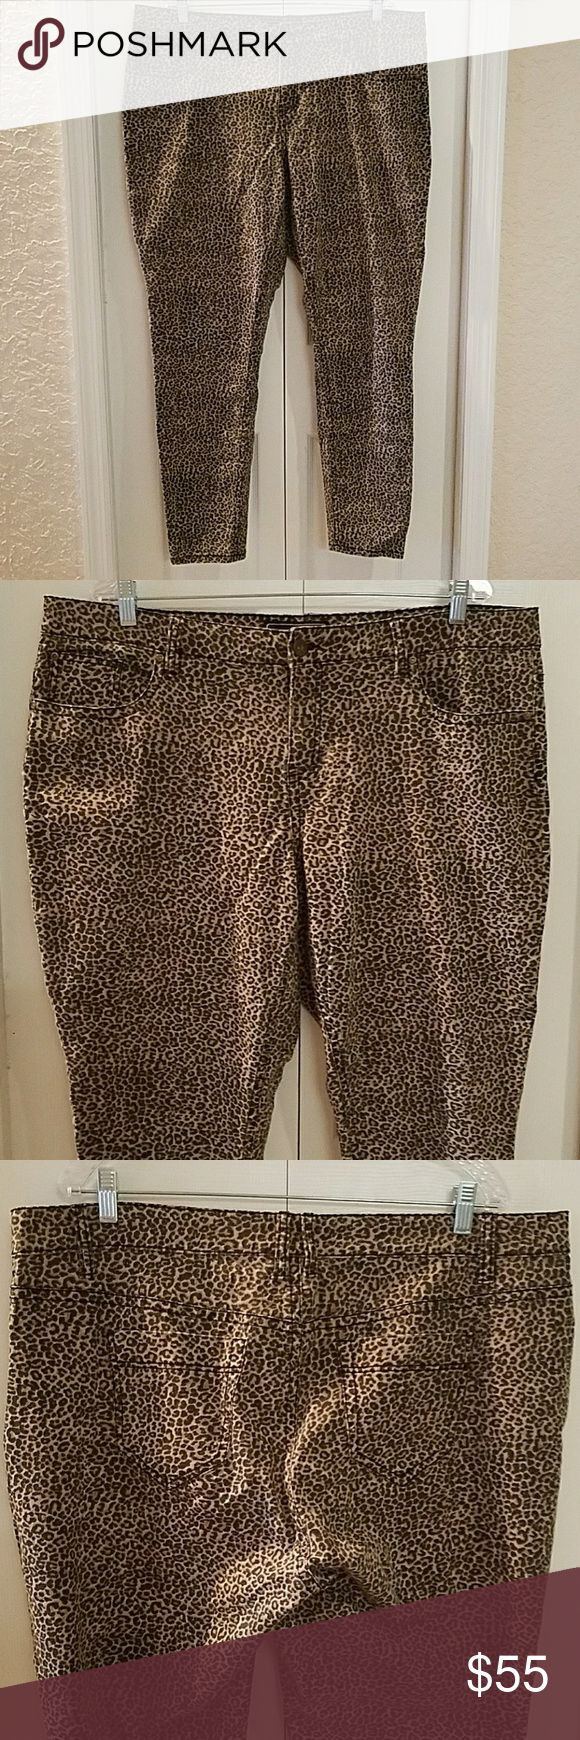 Leopard stretch jeans plus size 20 Offered is a wickedly sexy pair of factory faded leopard stretch jeans. Immaculate gently worn condition (worn twice, woolite gentle/washed inside out and gentle dry). Plus size 20W. Made by Cato. Slim leg. These are the perfect rockabilly jeans for spring! Cato Jeans